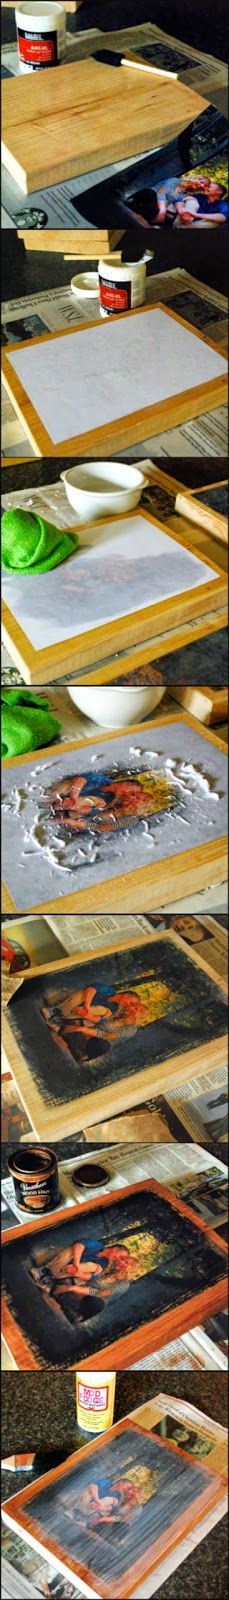 Photo transfer onto Wood - pinned over 25,000 times. Makes simple and inexpensive Christmas gifts!